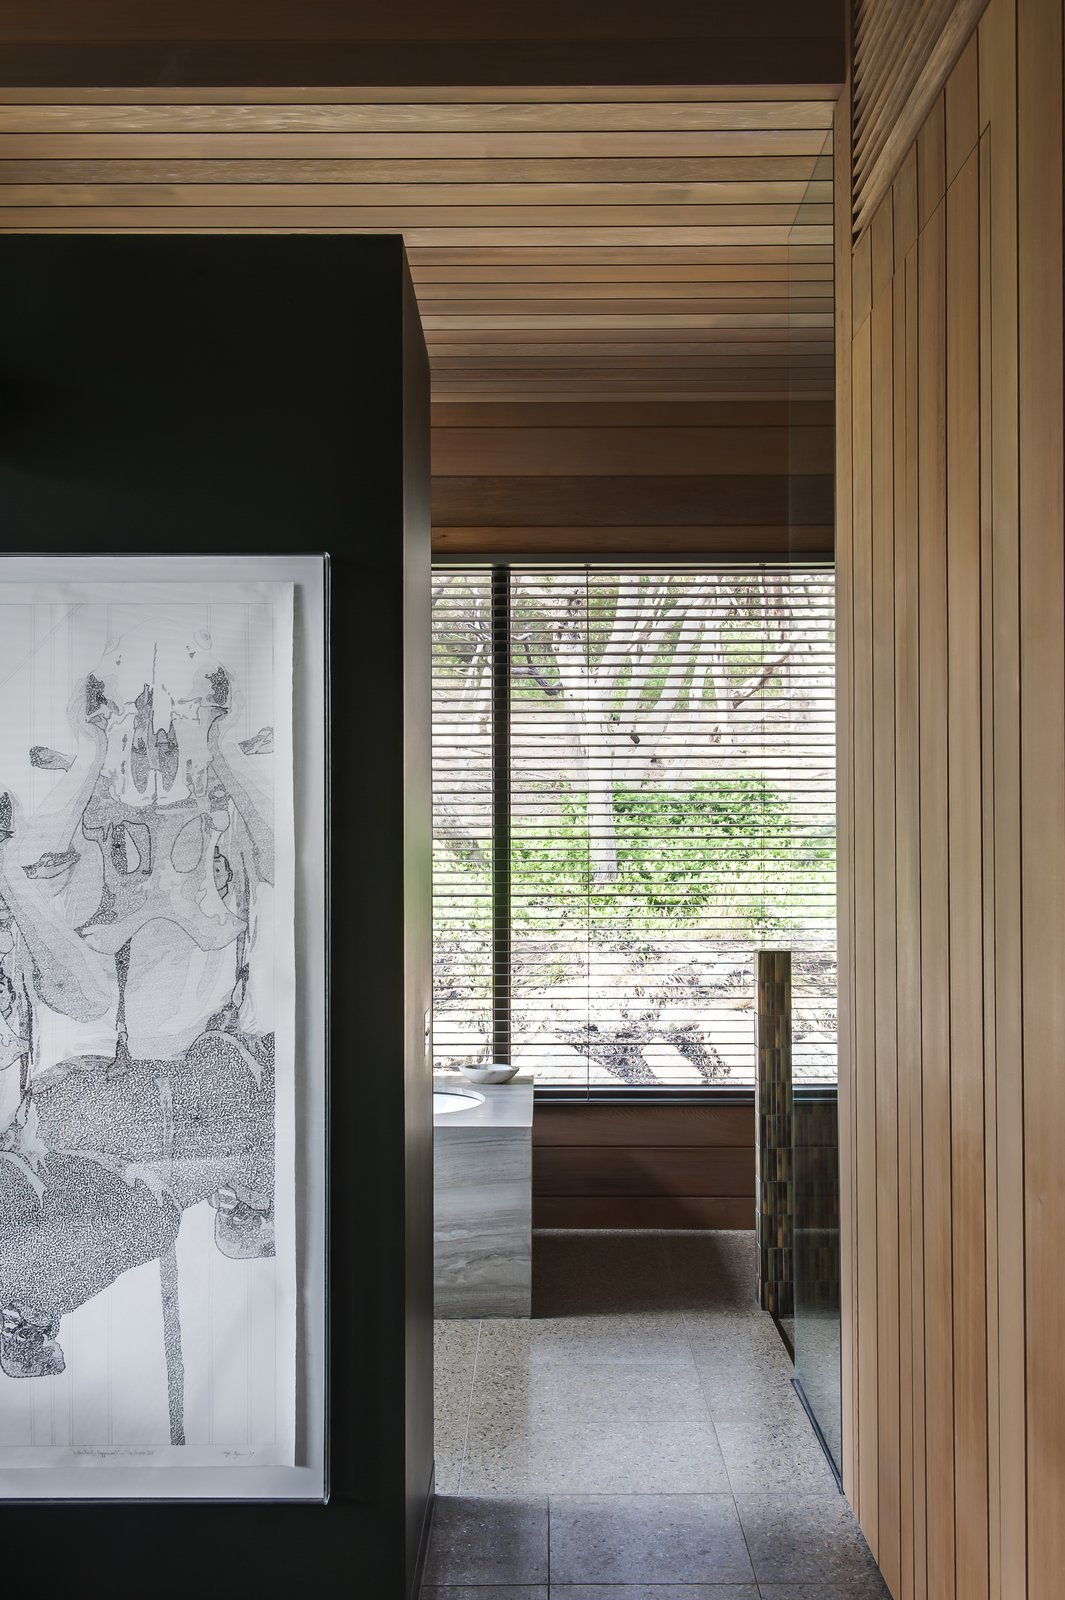 Photo 3 of 7 in Unexpected Bursts of Color Enliven a Midcentury Pad in Australia